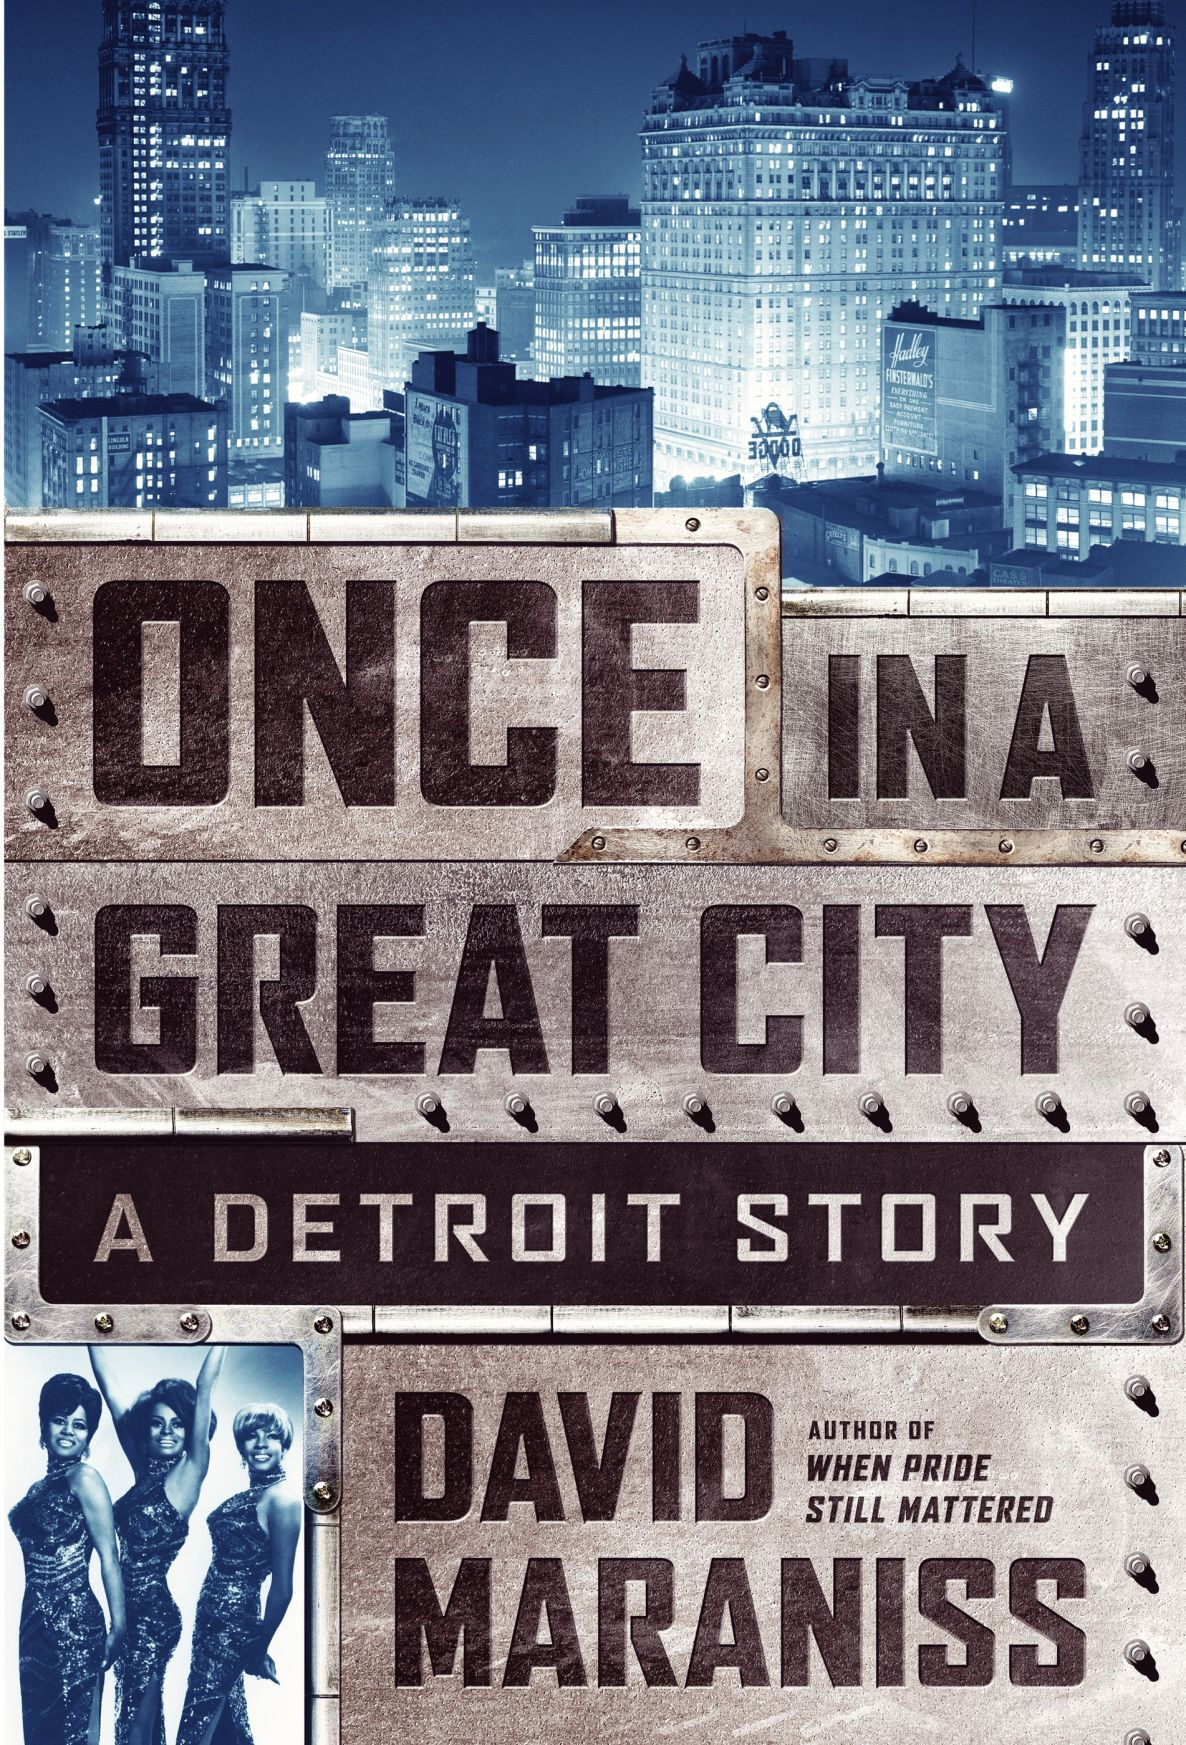 Look back at Detroit Book explores promise of city